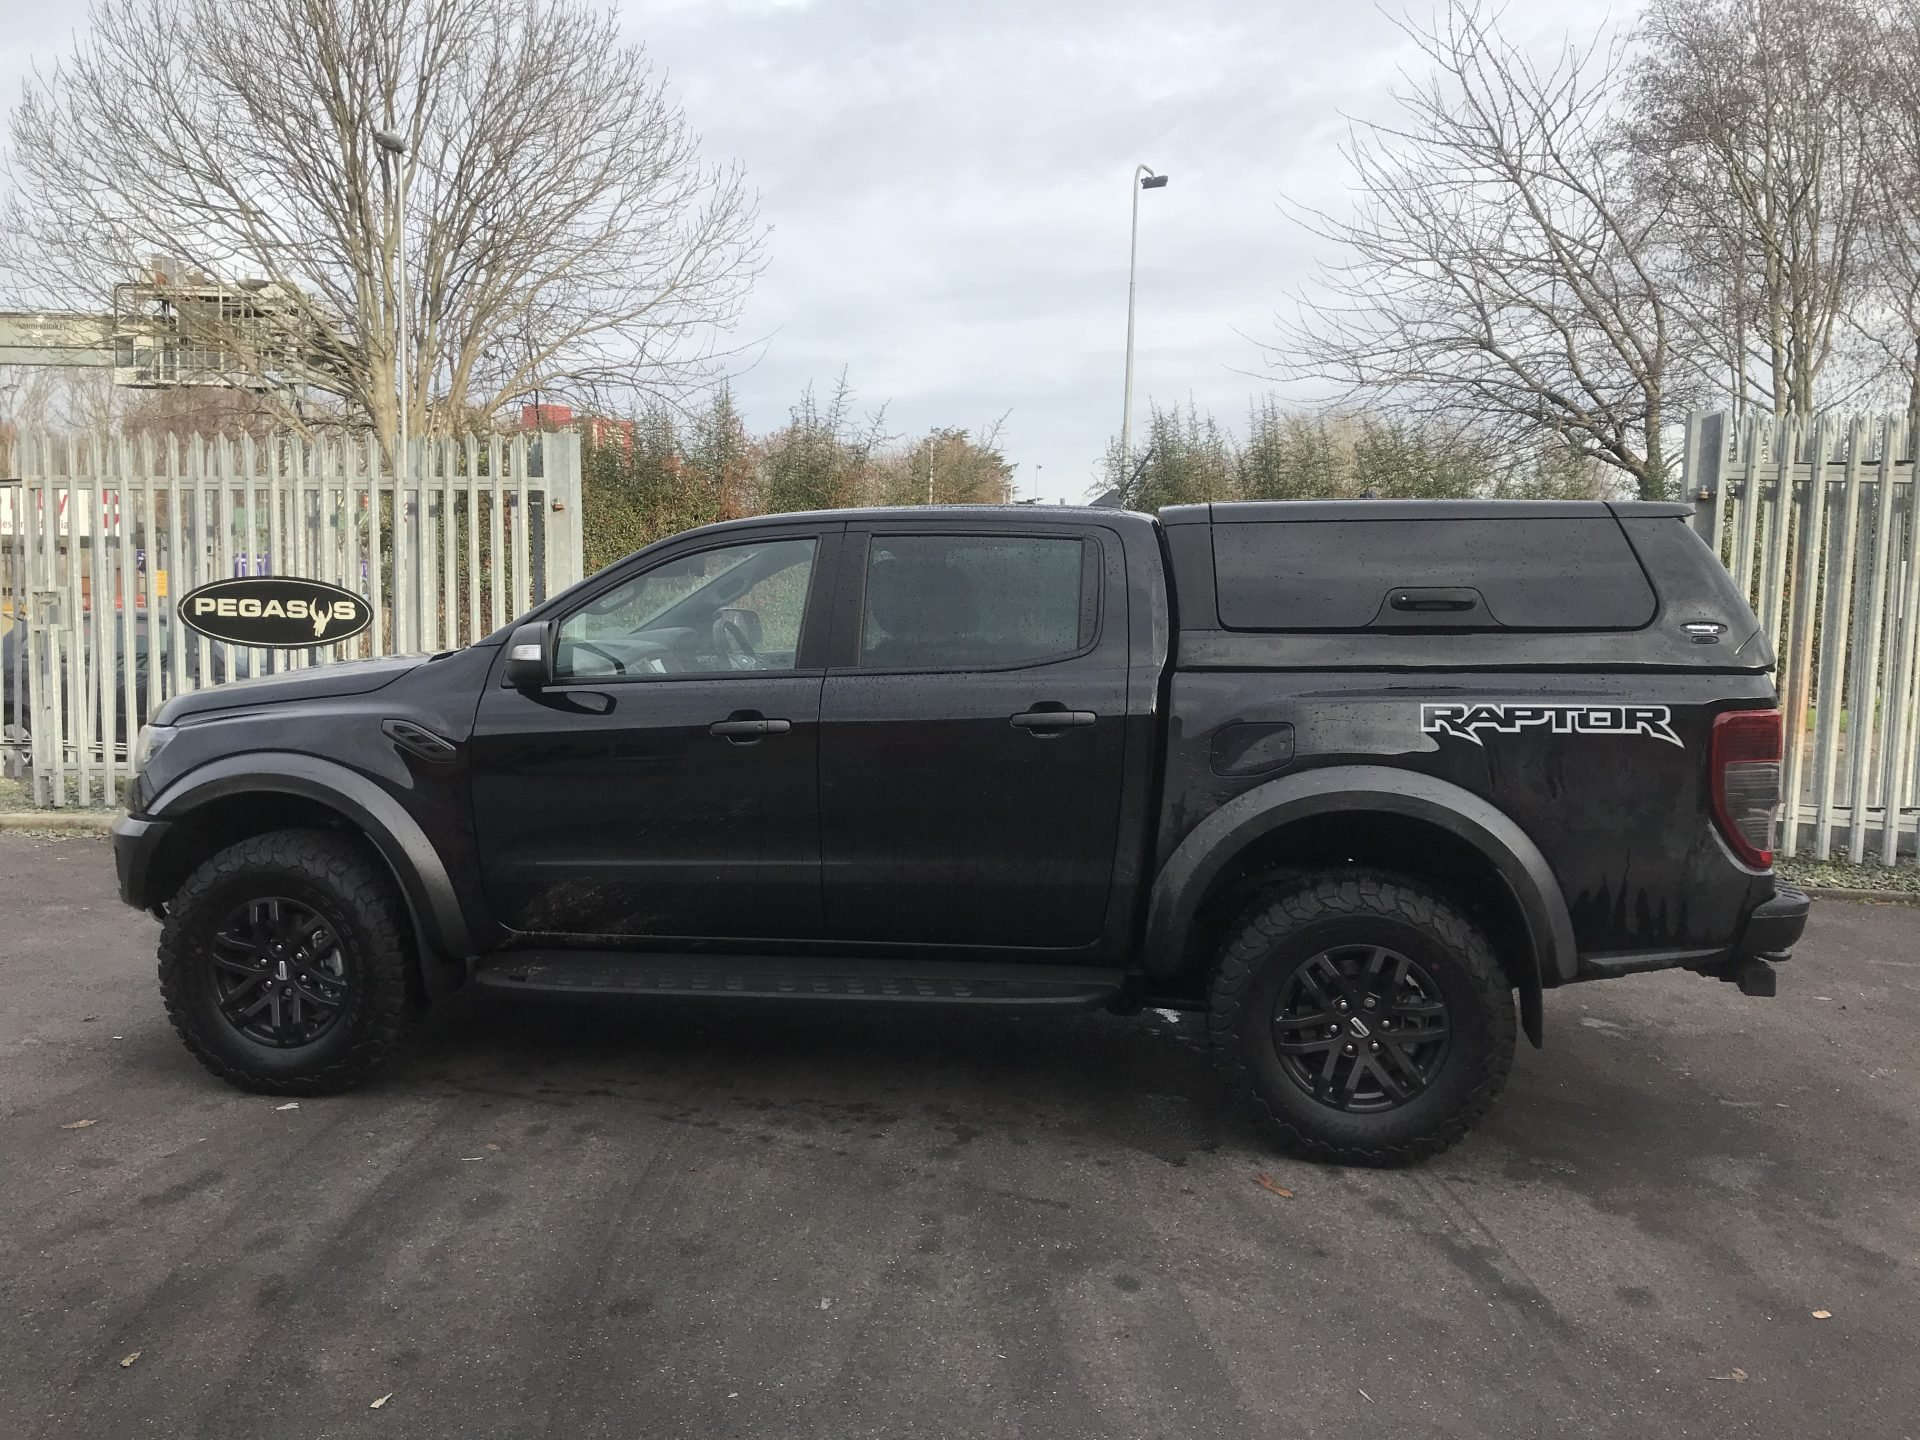 Ford Ranger Raptor Avantgarde Glazed Hardtop Canopy With Central Locking